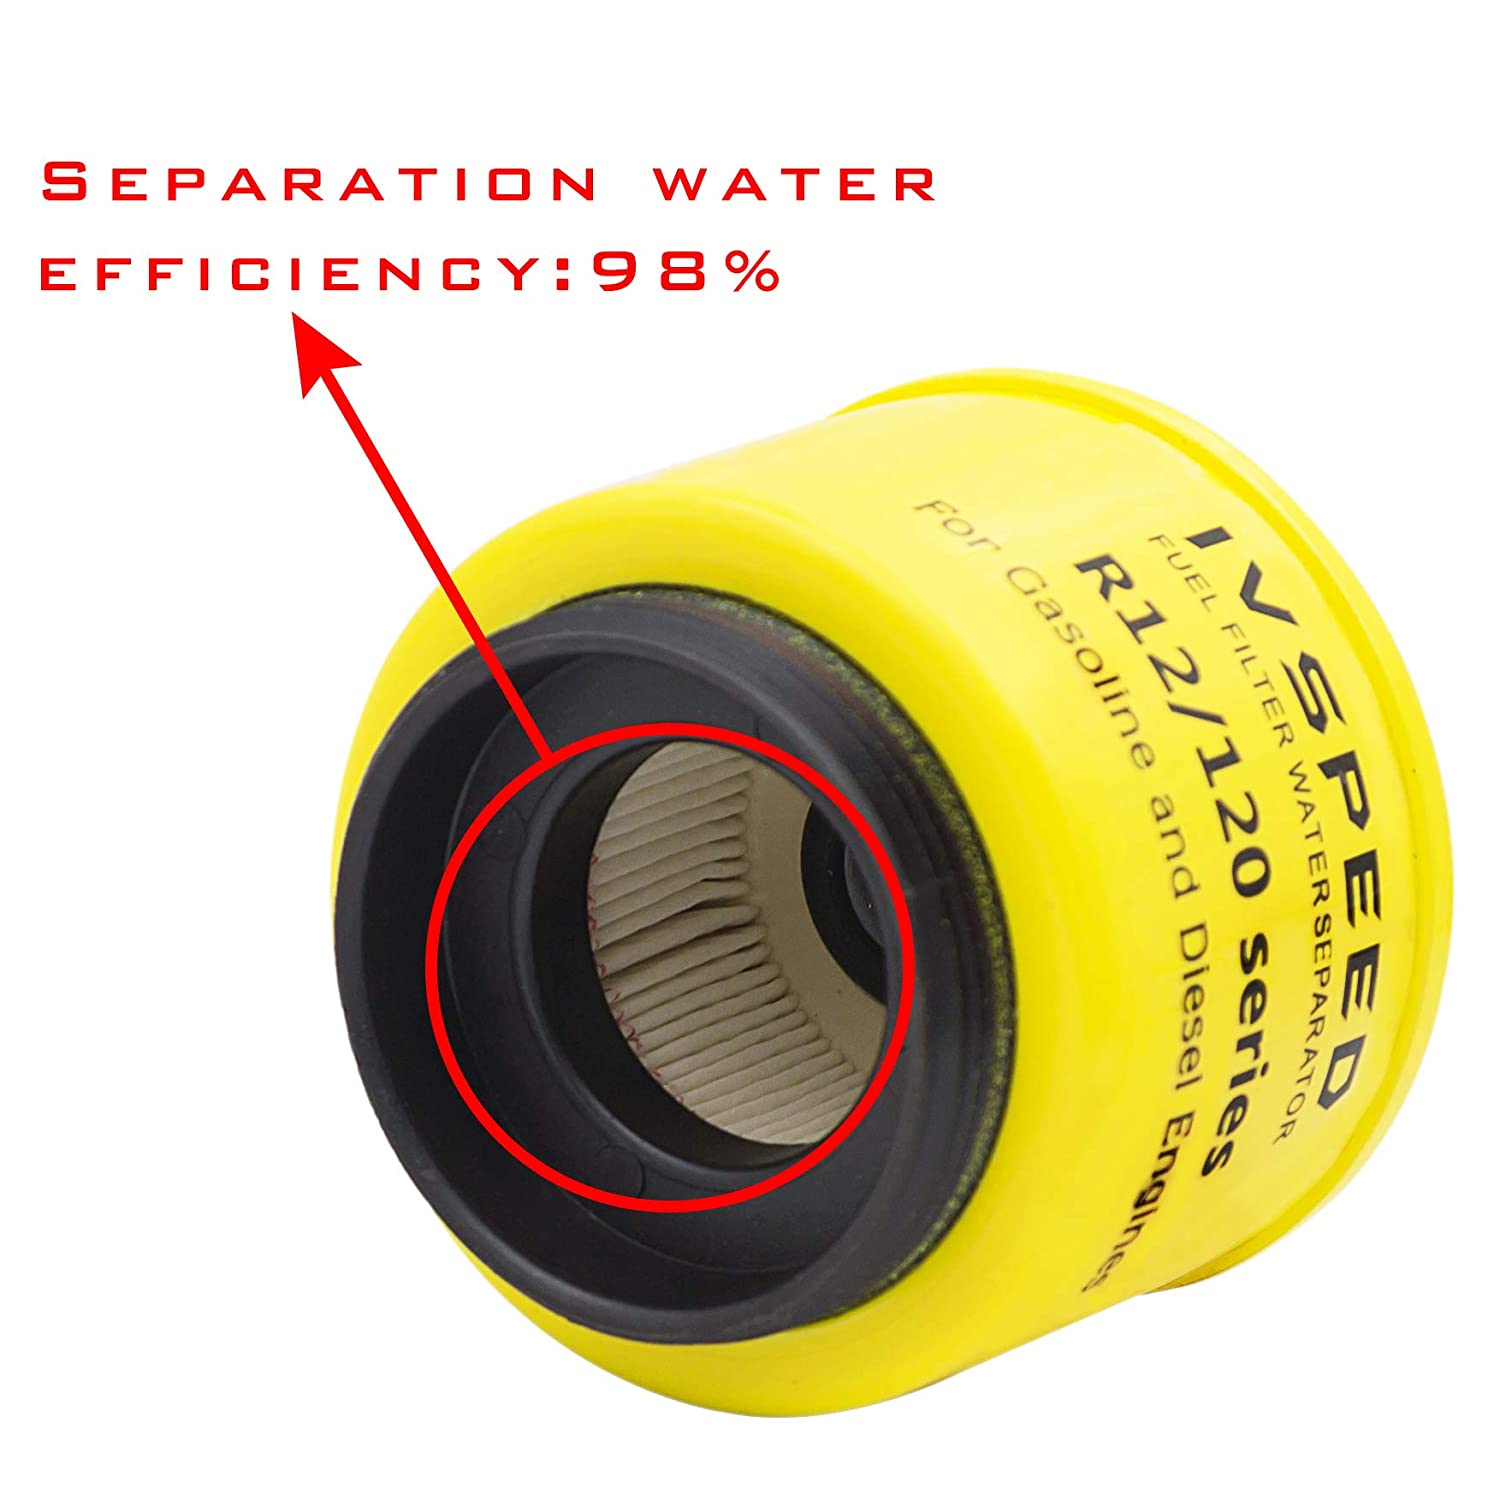 R12T diesel Fuel Filter//Fuel Water Separator 120AT NPT ZG1//4-19 Fittings Marine Spin-on for Racor 140R 120AT S3240 Automotive Parts Complete assy Filter Fit Diesel Engine